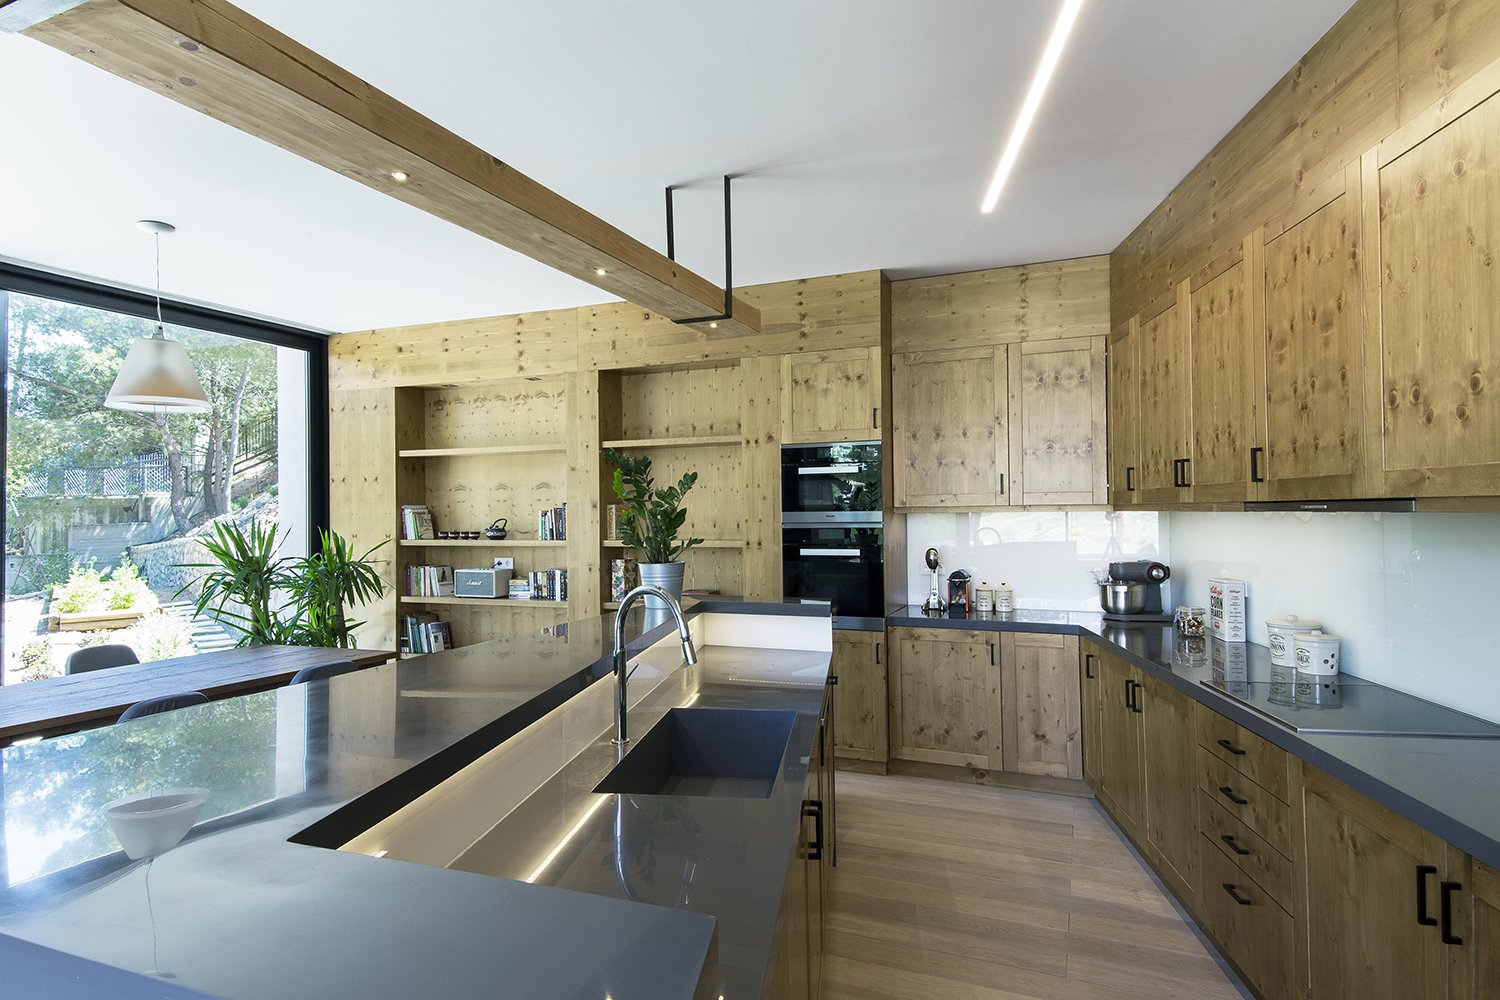 Kitchen, Light Hardwood Floor, and Wood Cabinet The finishes that appear in their natural state give warmth to the house   The Wedge House